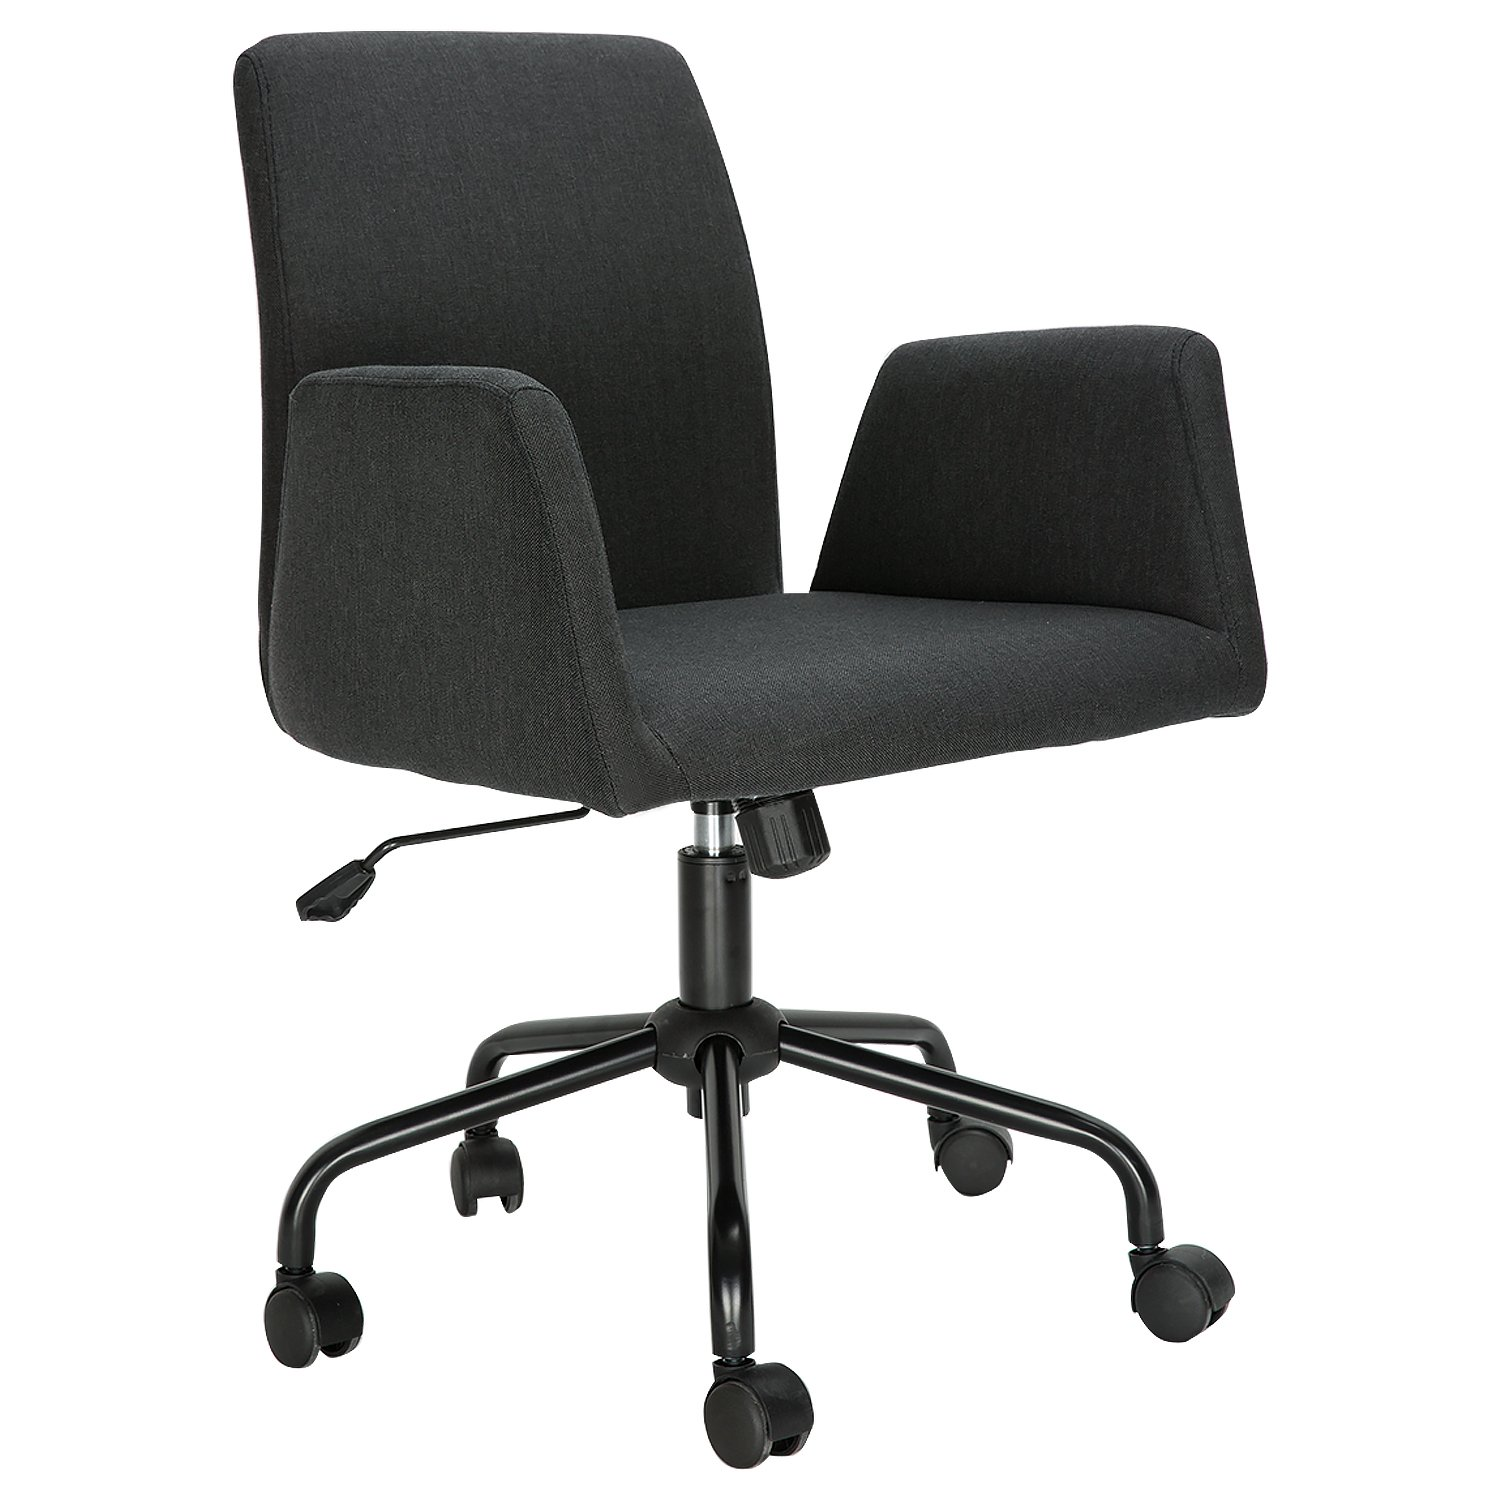 HollyHOME Fabric Home Office Chair,Leisure Chair with Adjustable Height, Black